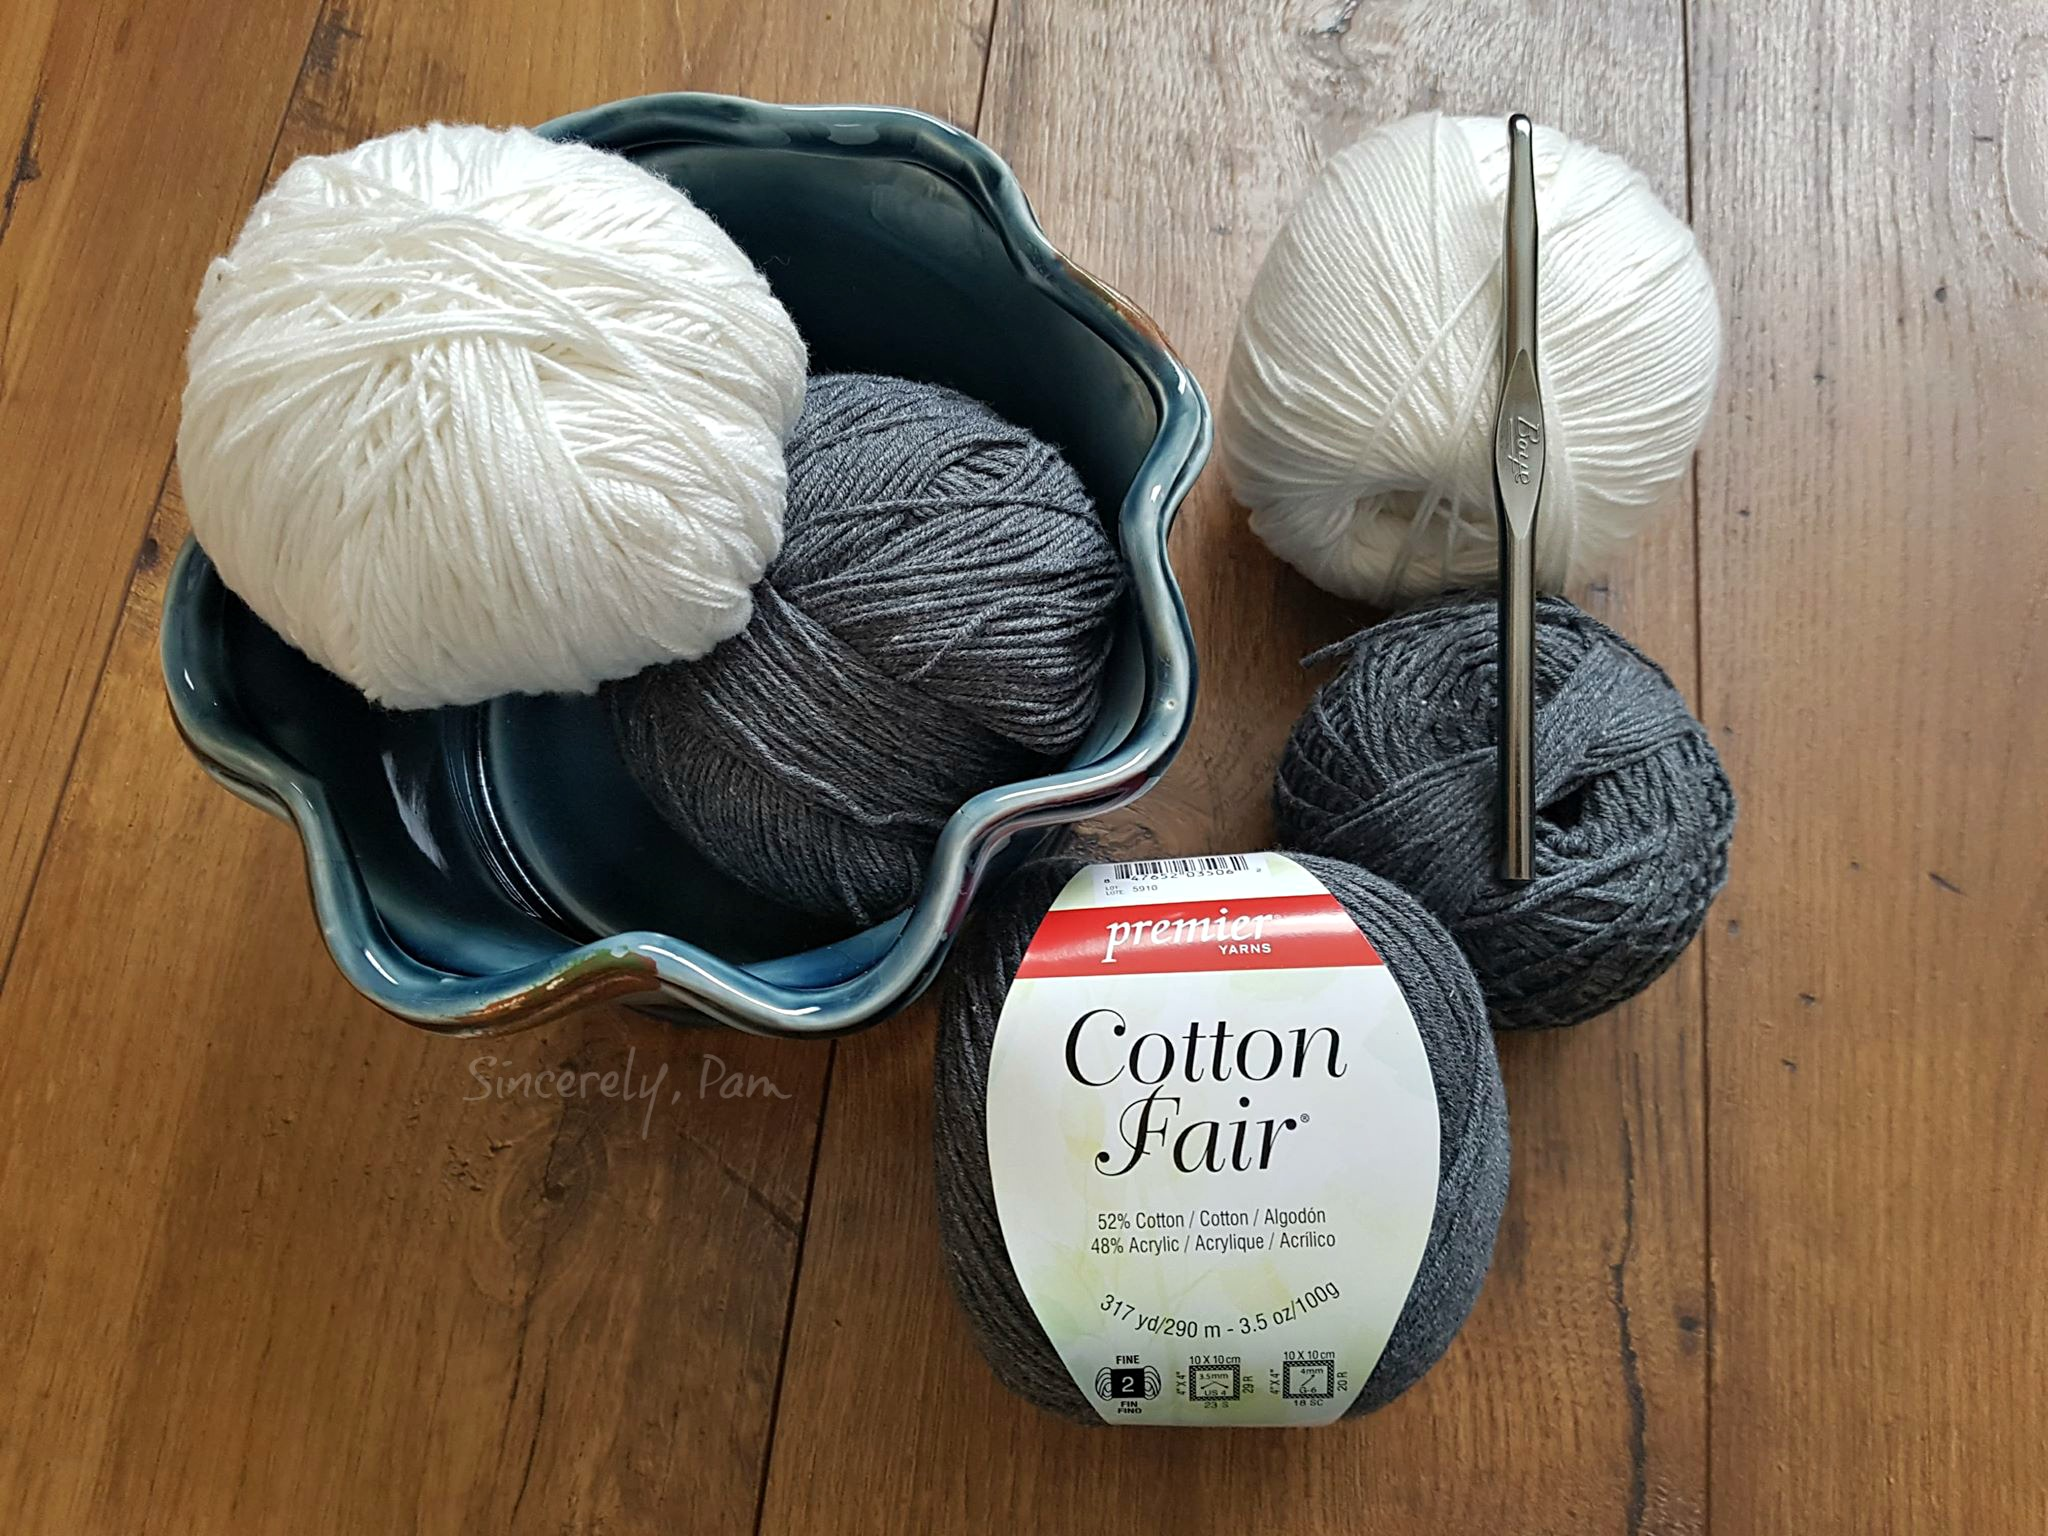 Premier Cotton Fair yarn